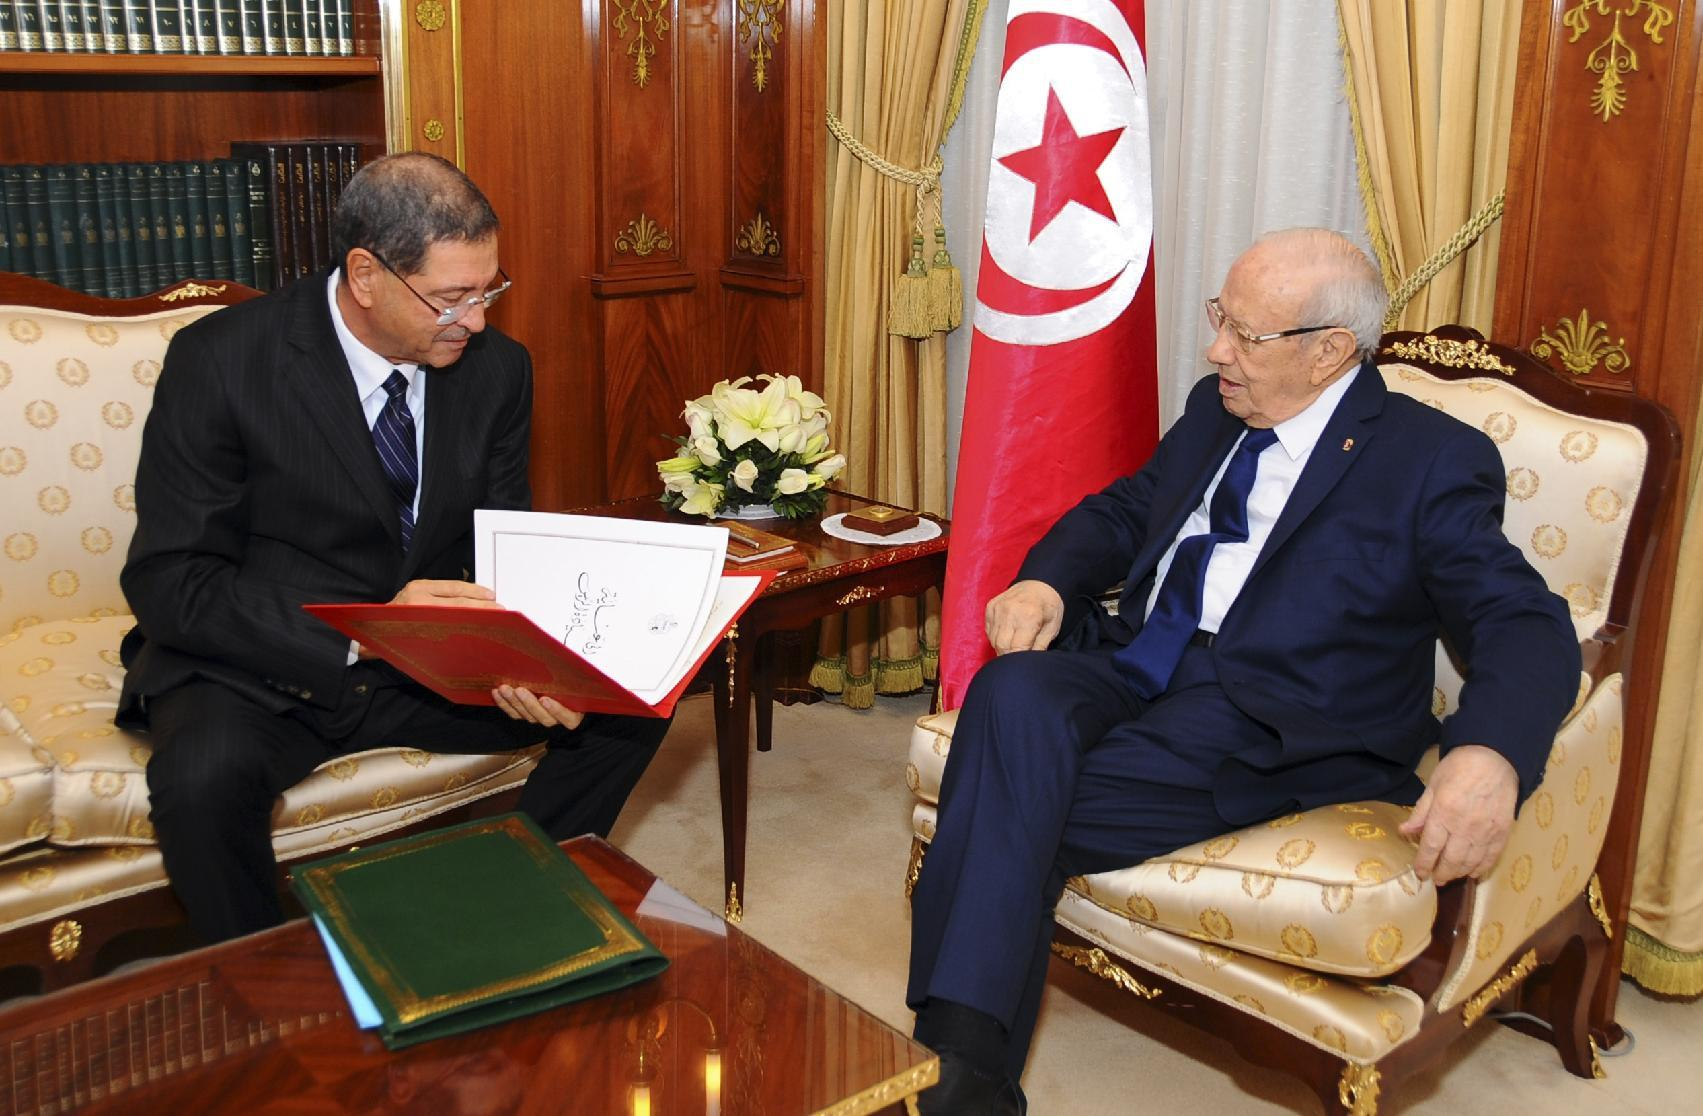 Tunisia announces new minority government without Islamists